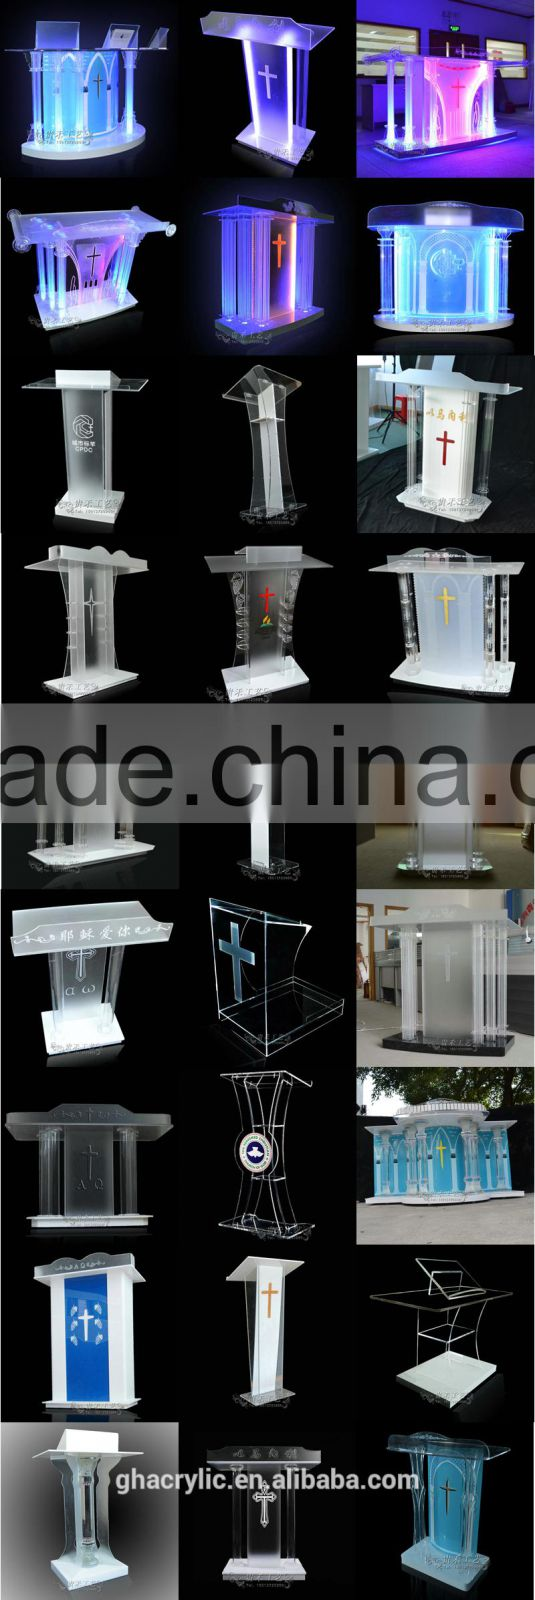 GH-RZ246 Modern design acrylic wine rack,high quality acrylic liquor holder, acrylic beverage display